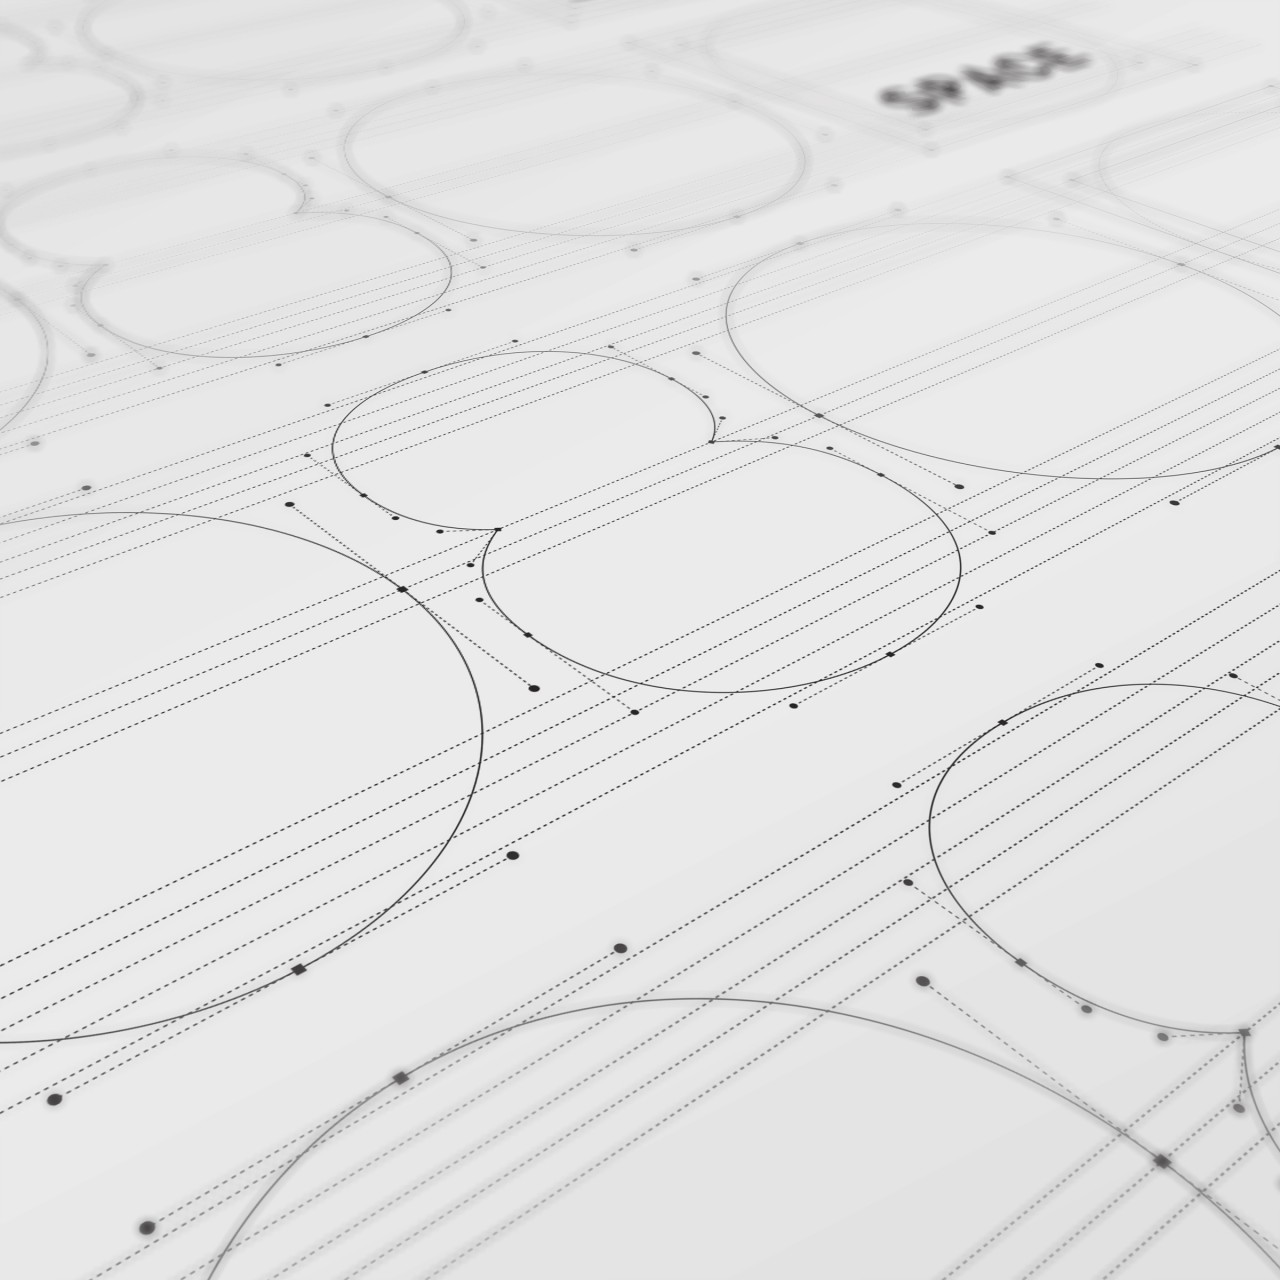 Image of 1080 Space logo process vector outlines